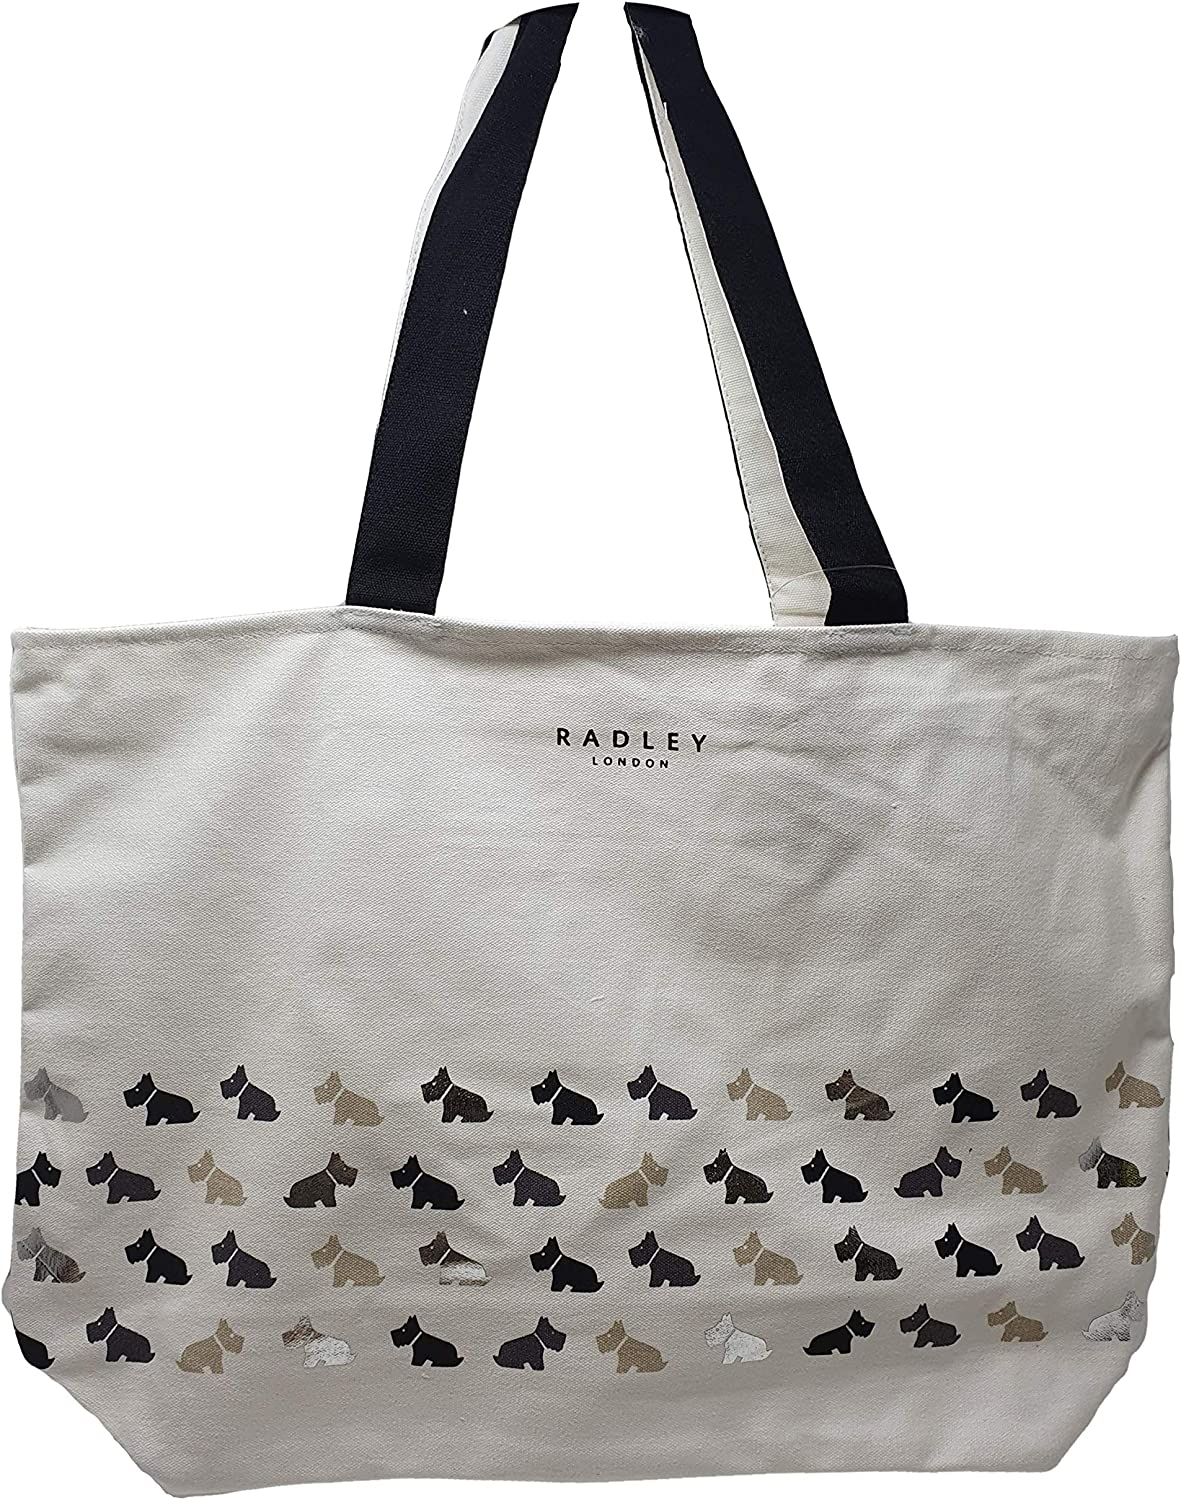 Radley Large zip top Multi Dog Tote shopper bag in black and silver canvas